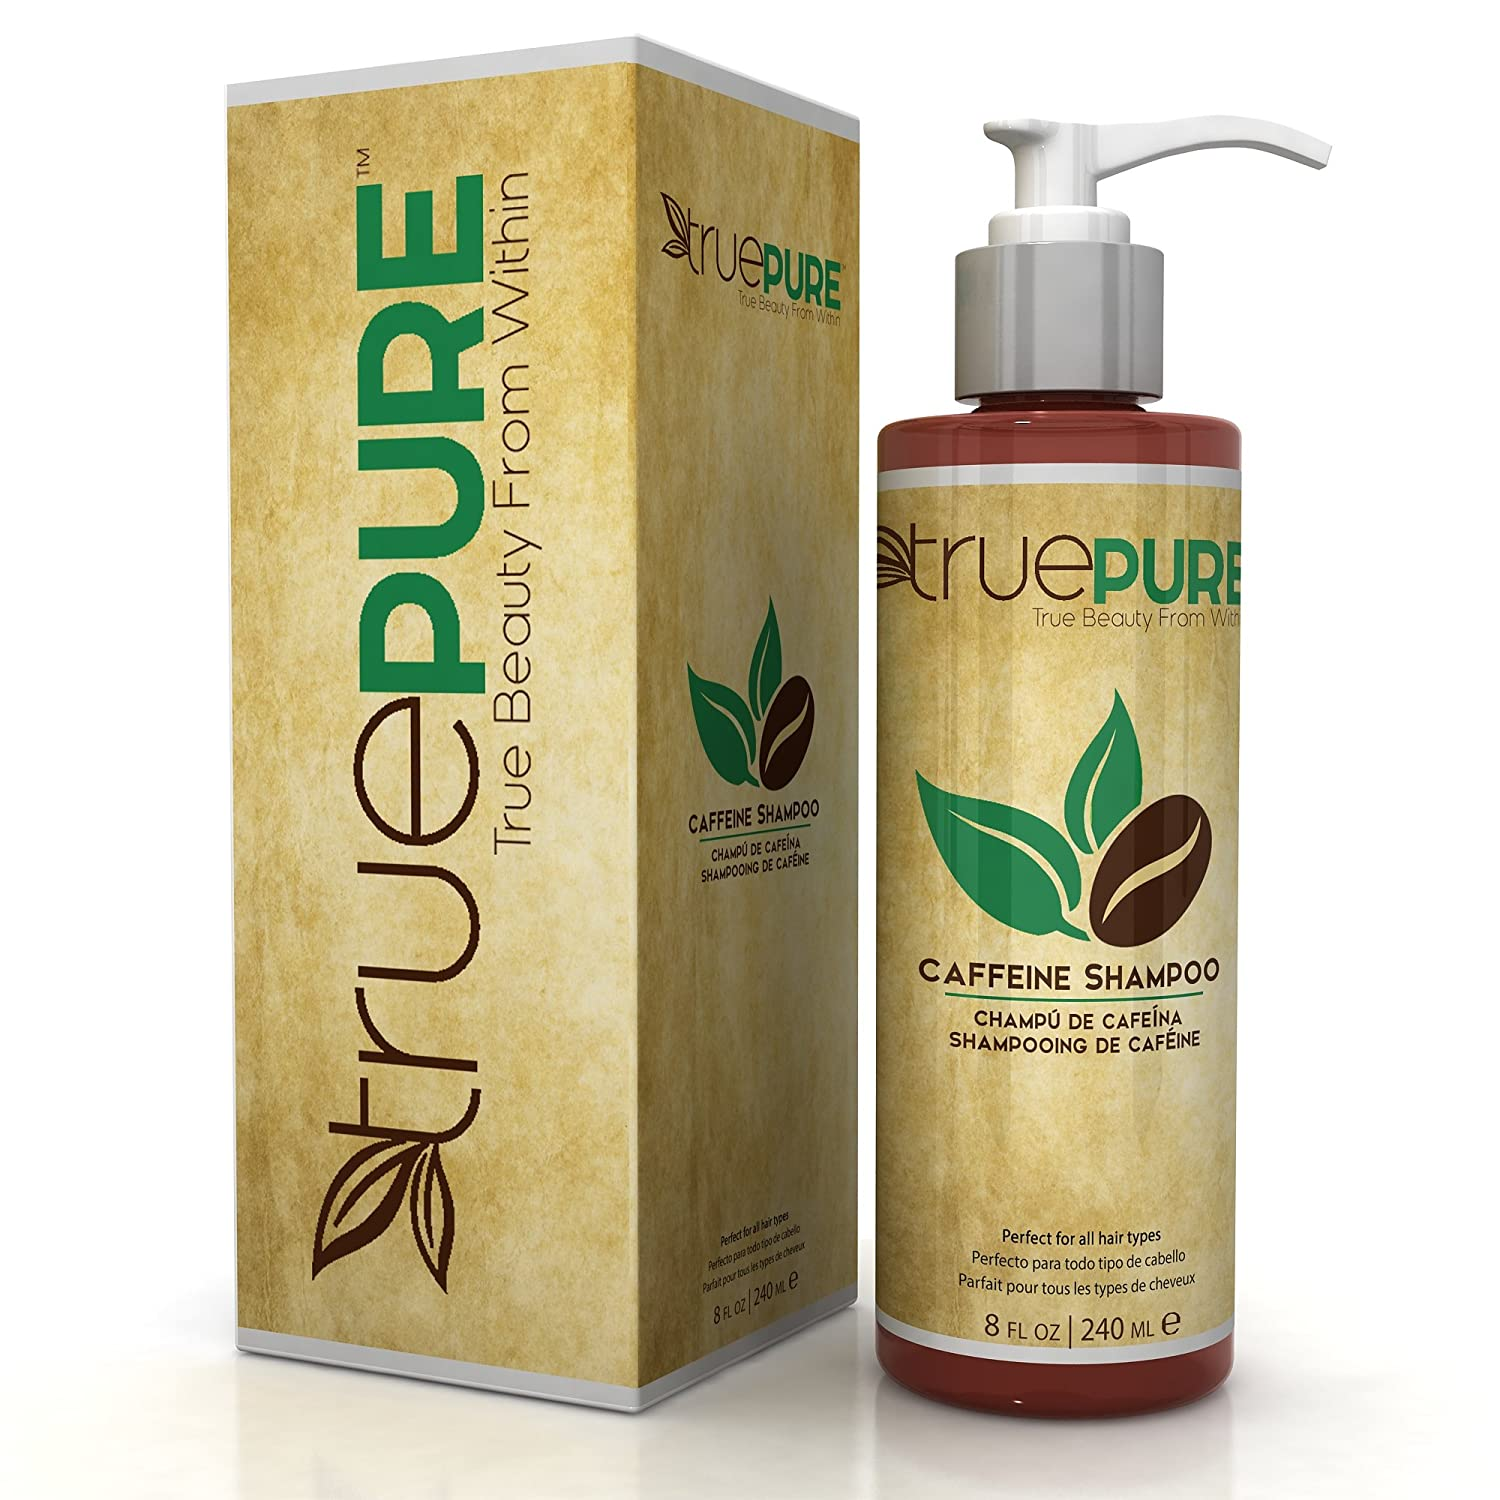 TruePure Natural Caffeine Shampoo With CoffeePure Complex - Fragrance Free, Non-GMO, Paraben & Sulfate Free Formula For Hair Loss Prevention & Healthy Hair Growth - 8oz CS1001